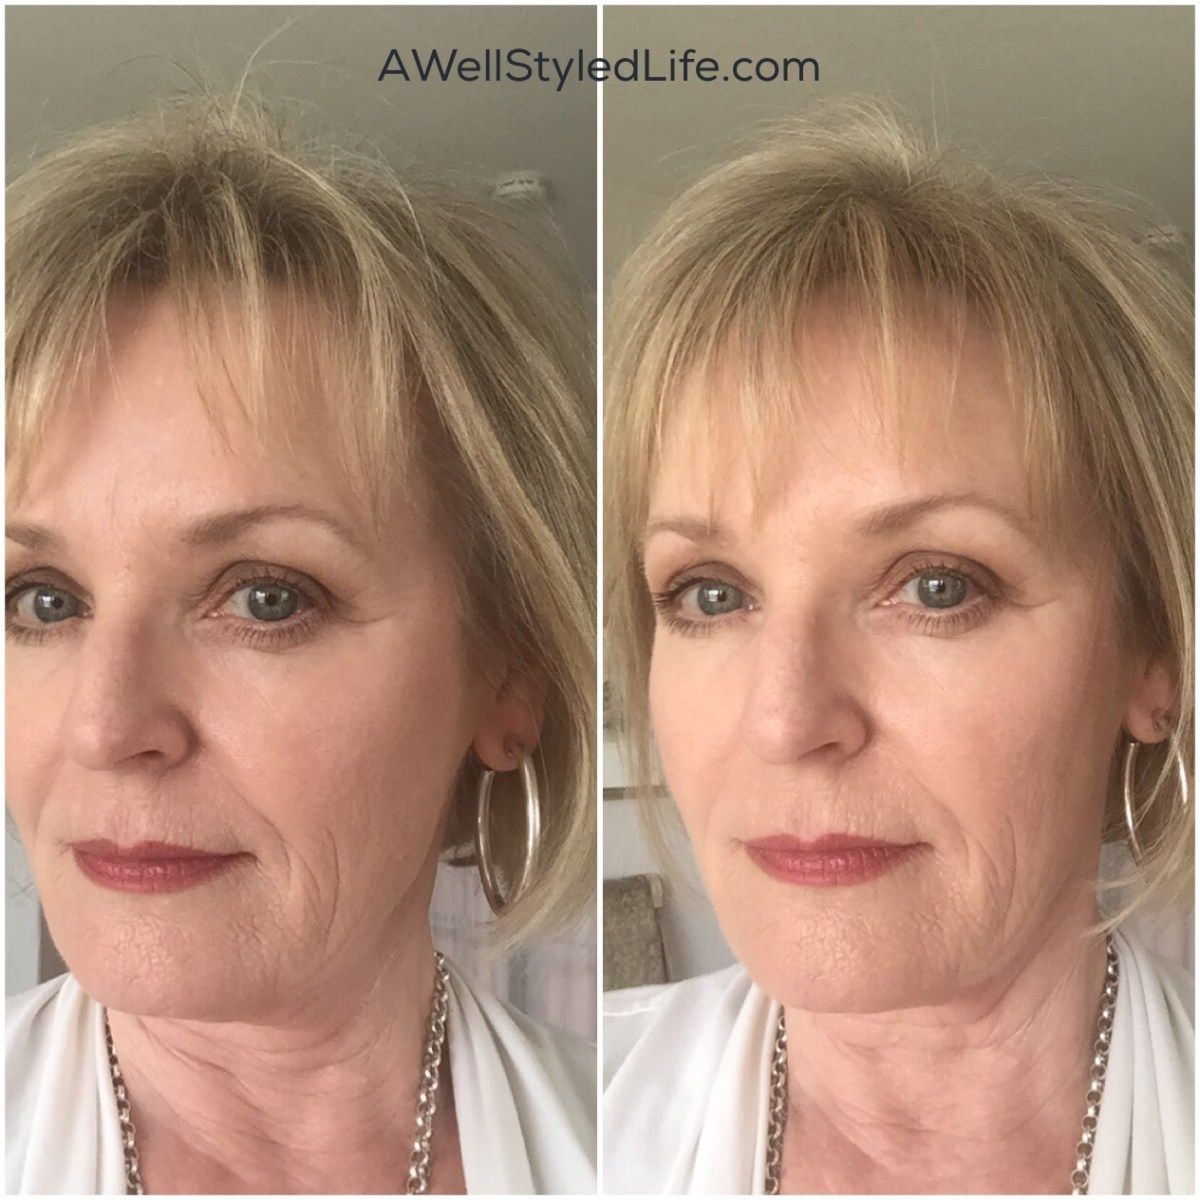 Real Help For Thinning Hair In Women Over 50 A Well Styled Life Thin Hair Styles For Women Hairstyles For Thin Hair Thining Hair